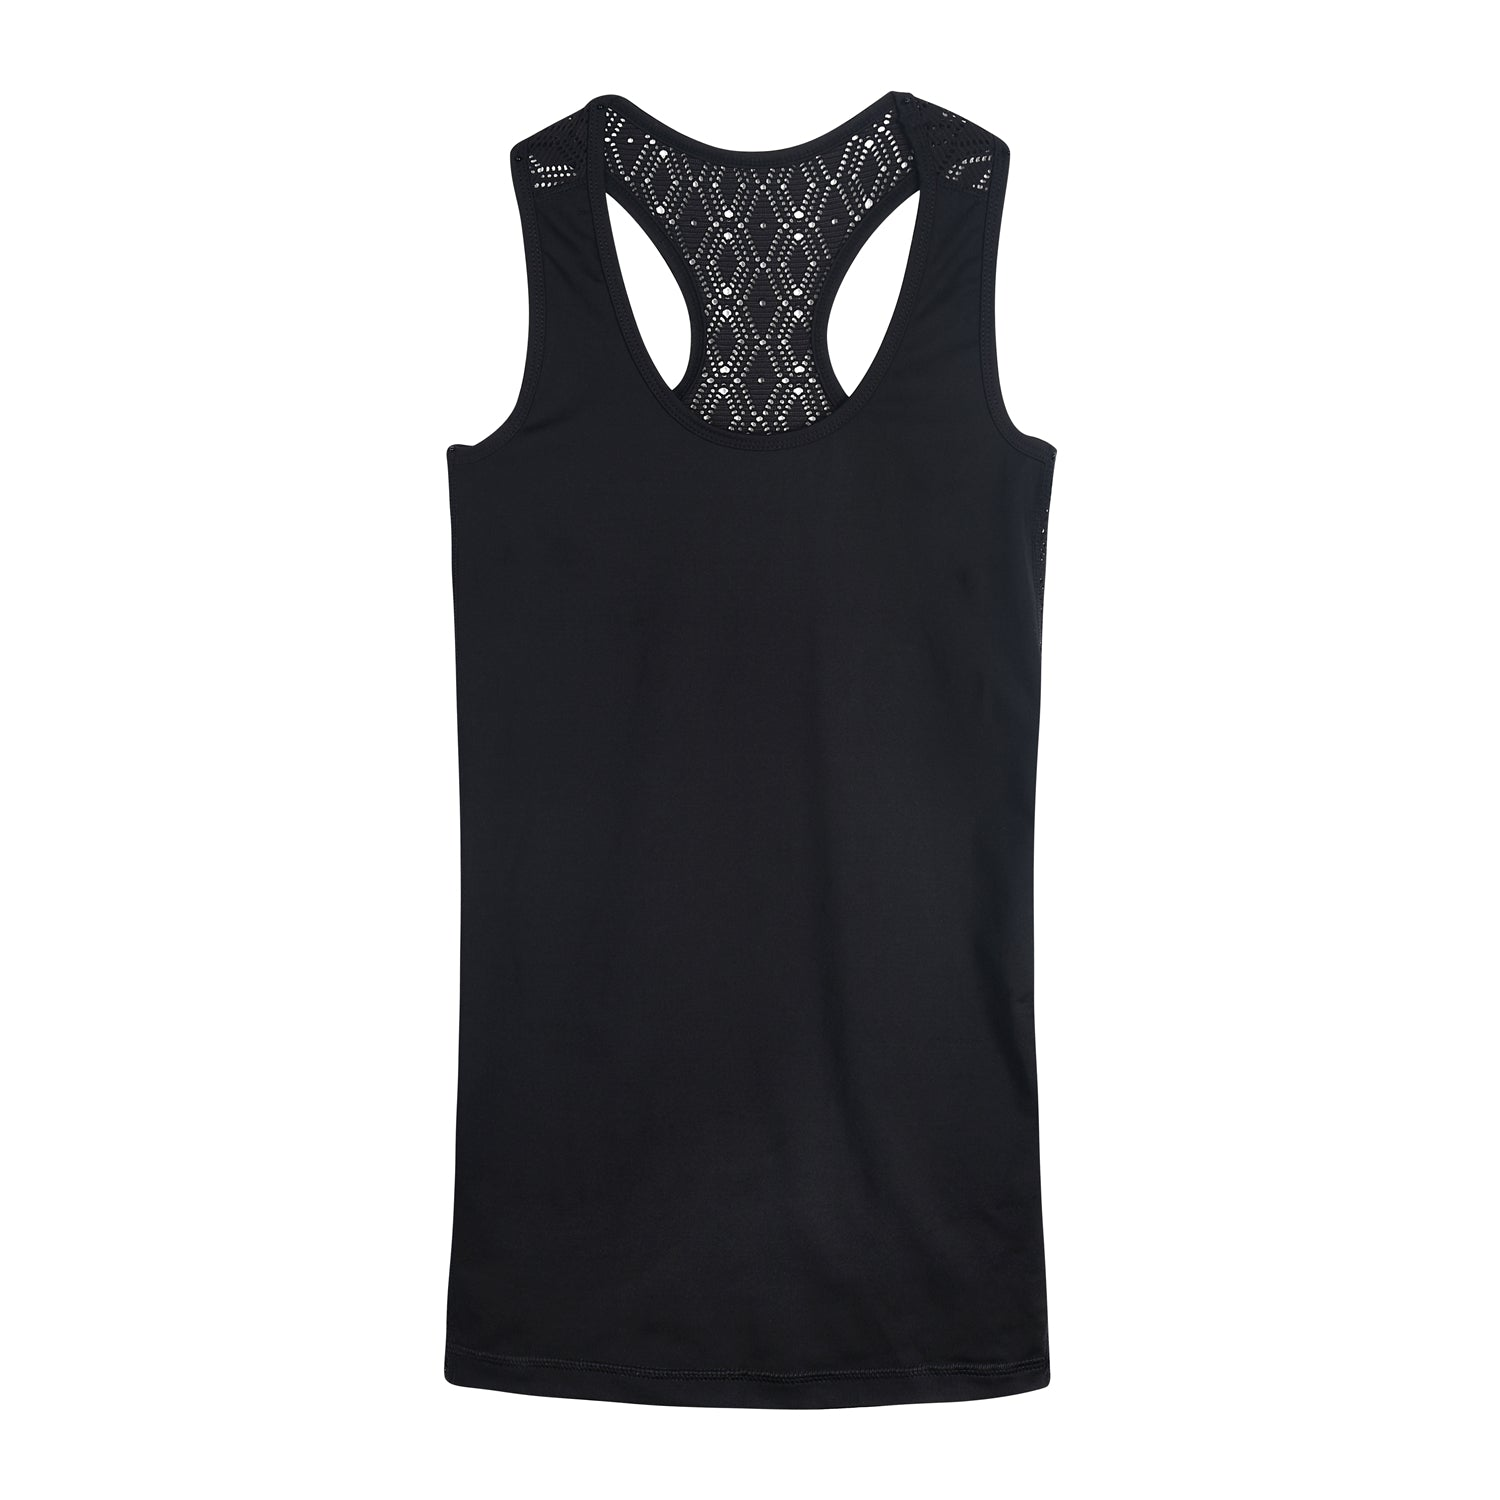 "Women's Tank Top "" Julia"" in solid black and soft lace - IAM3F"